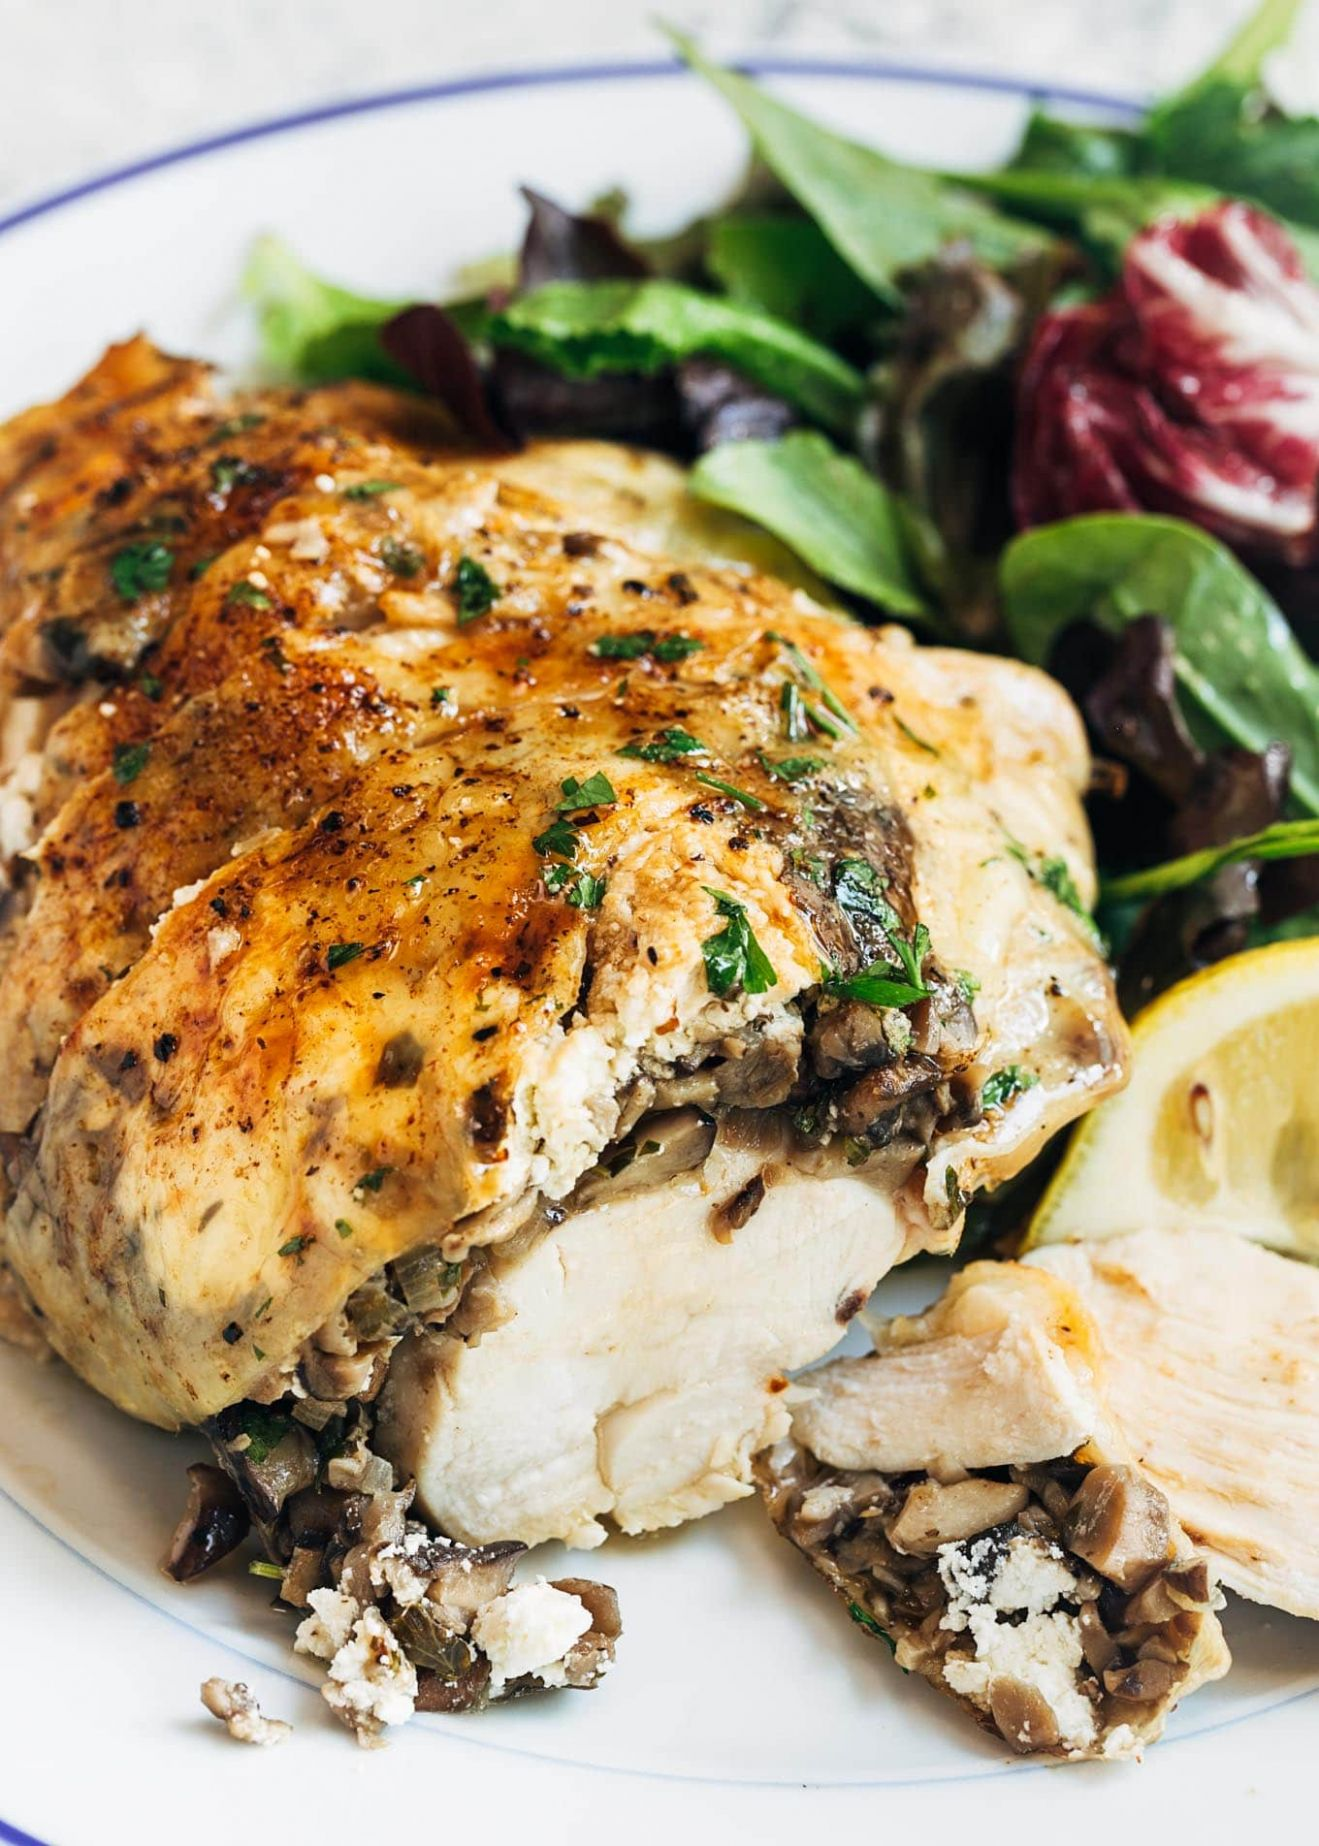 Stuffed Chicken Breasts with Mushrooms & Goat Cheese - Recipe Chicken Breast Goat Cheese